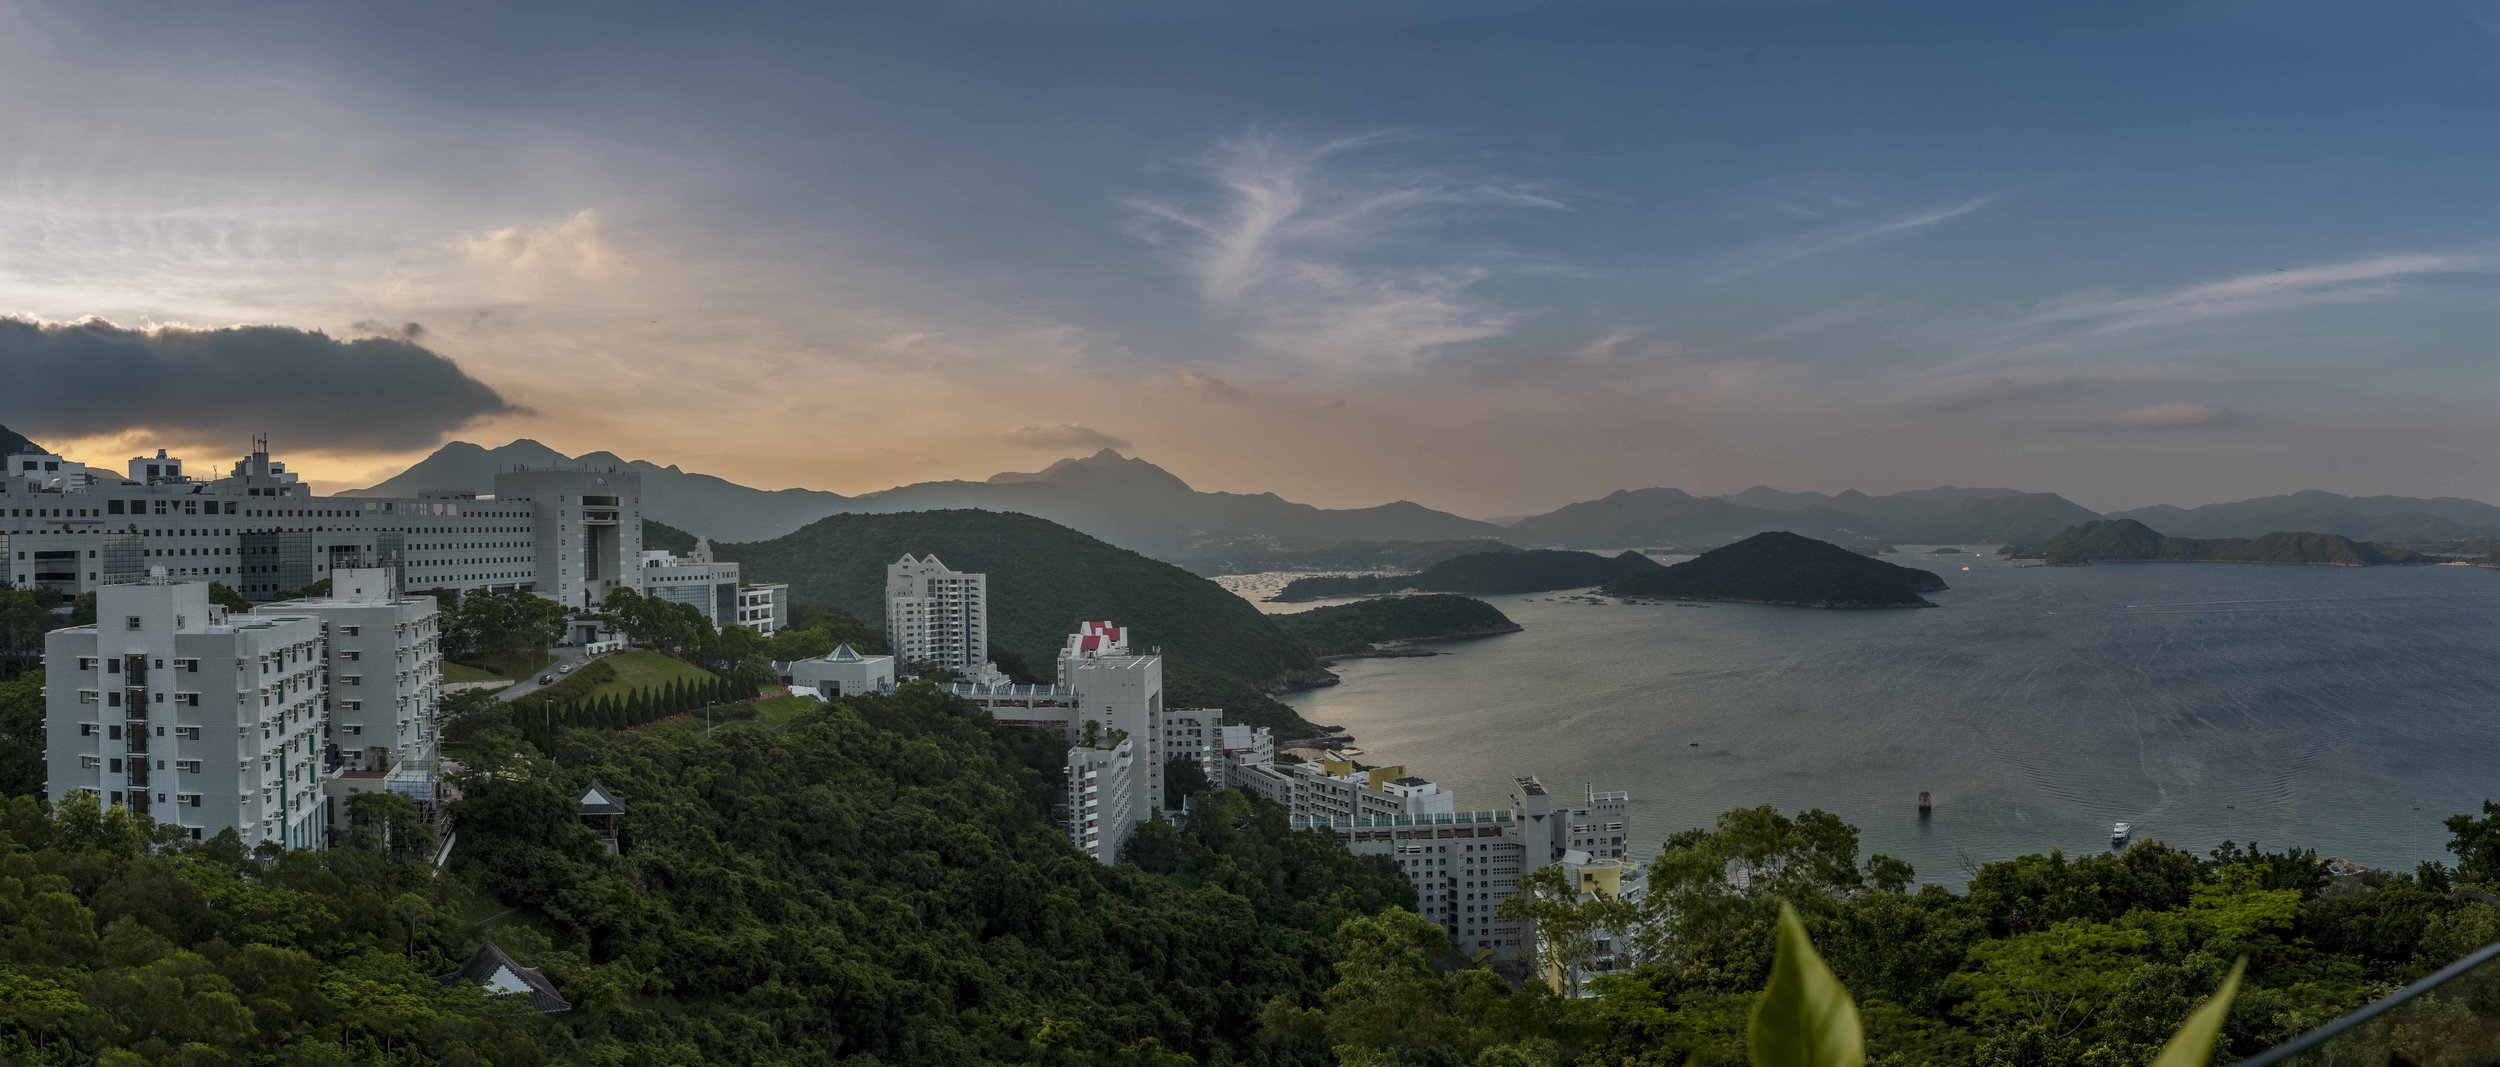 View over HKUST Campus from the flat we stayed in